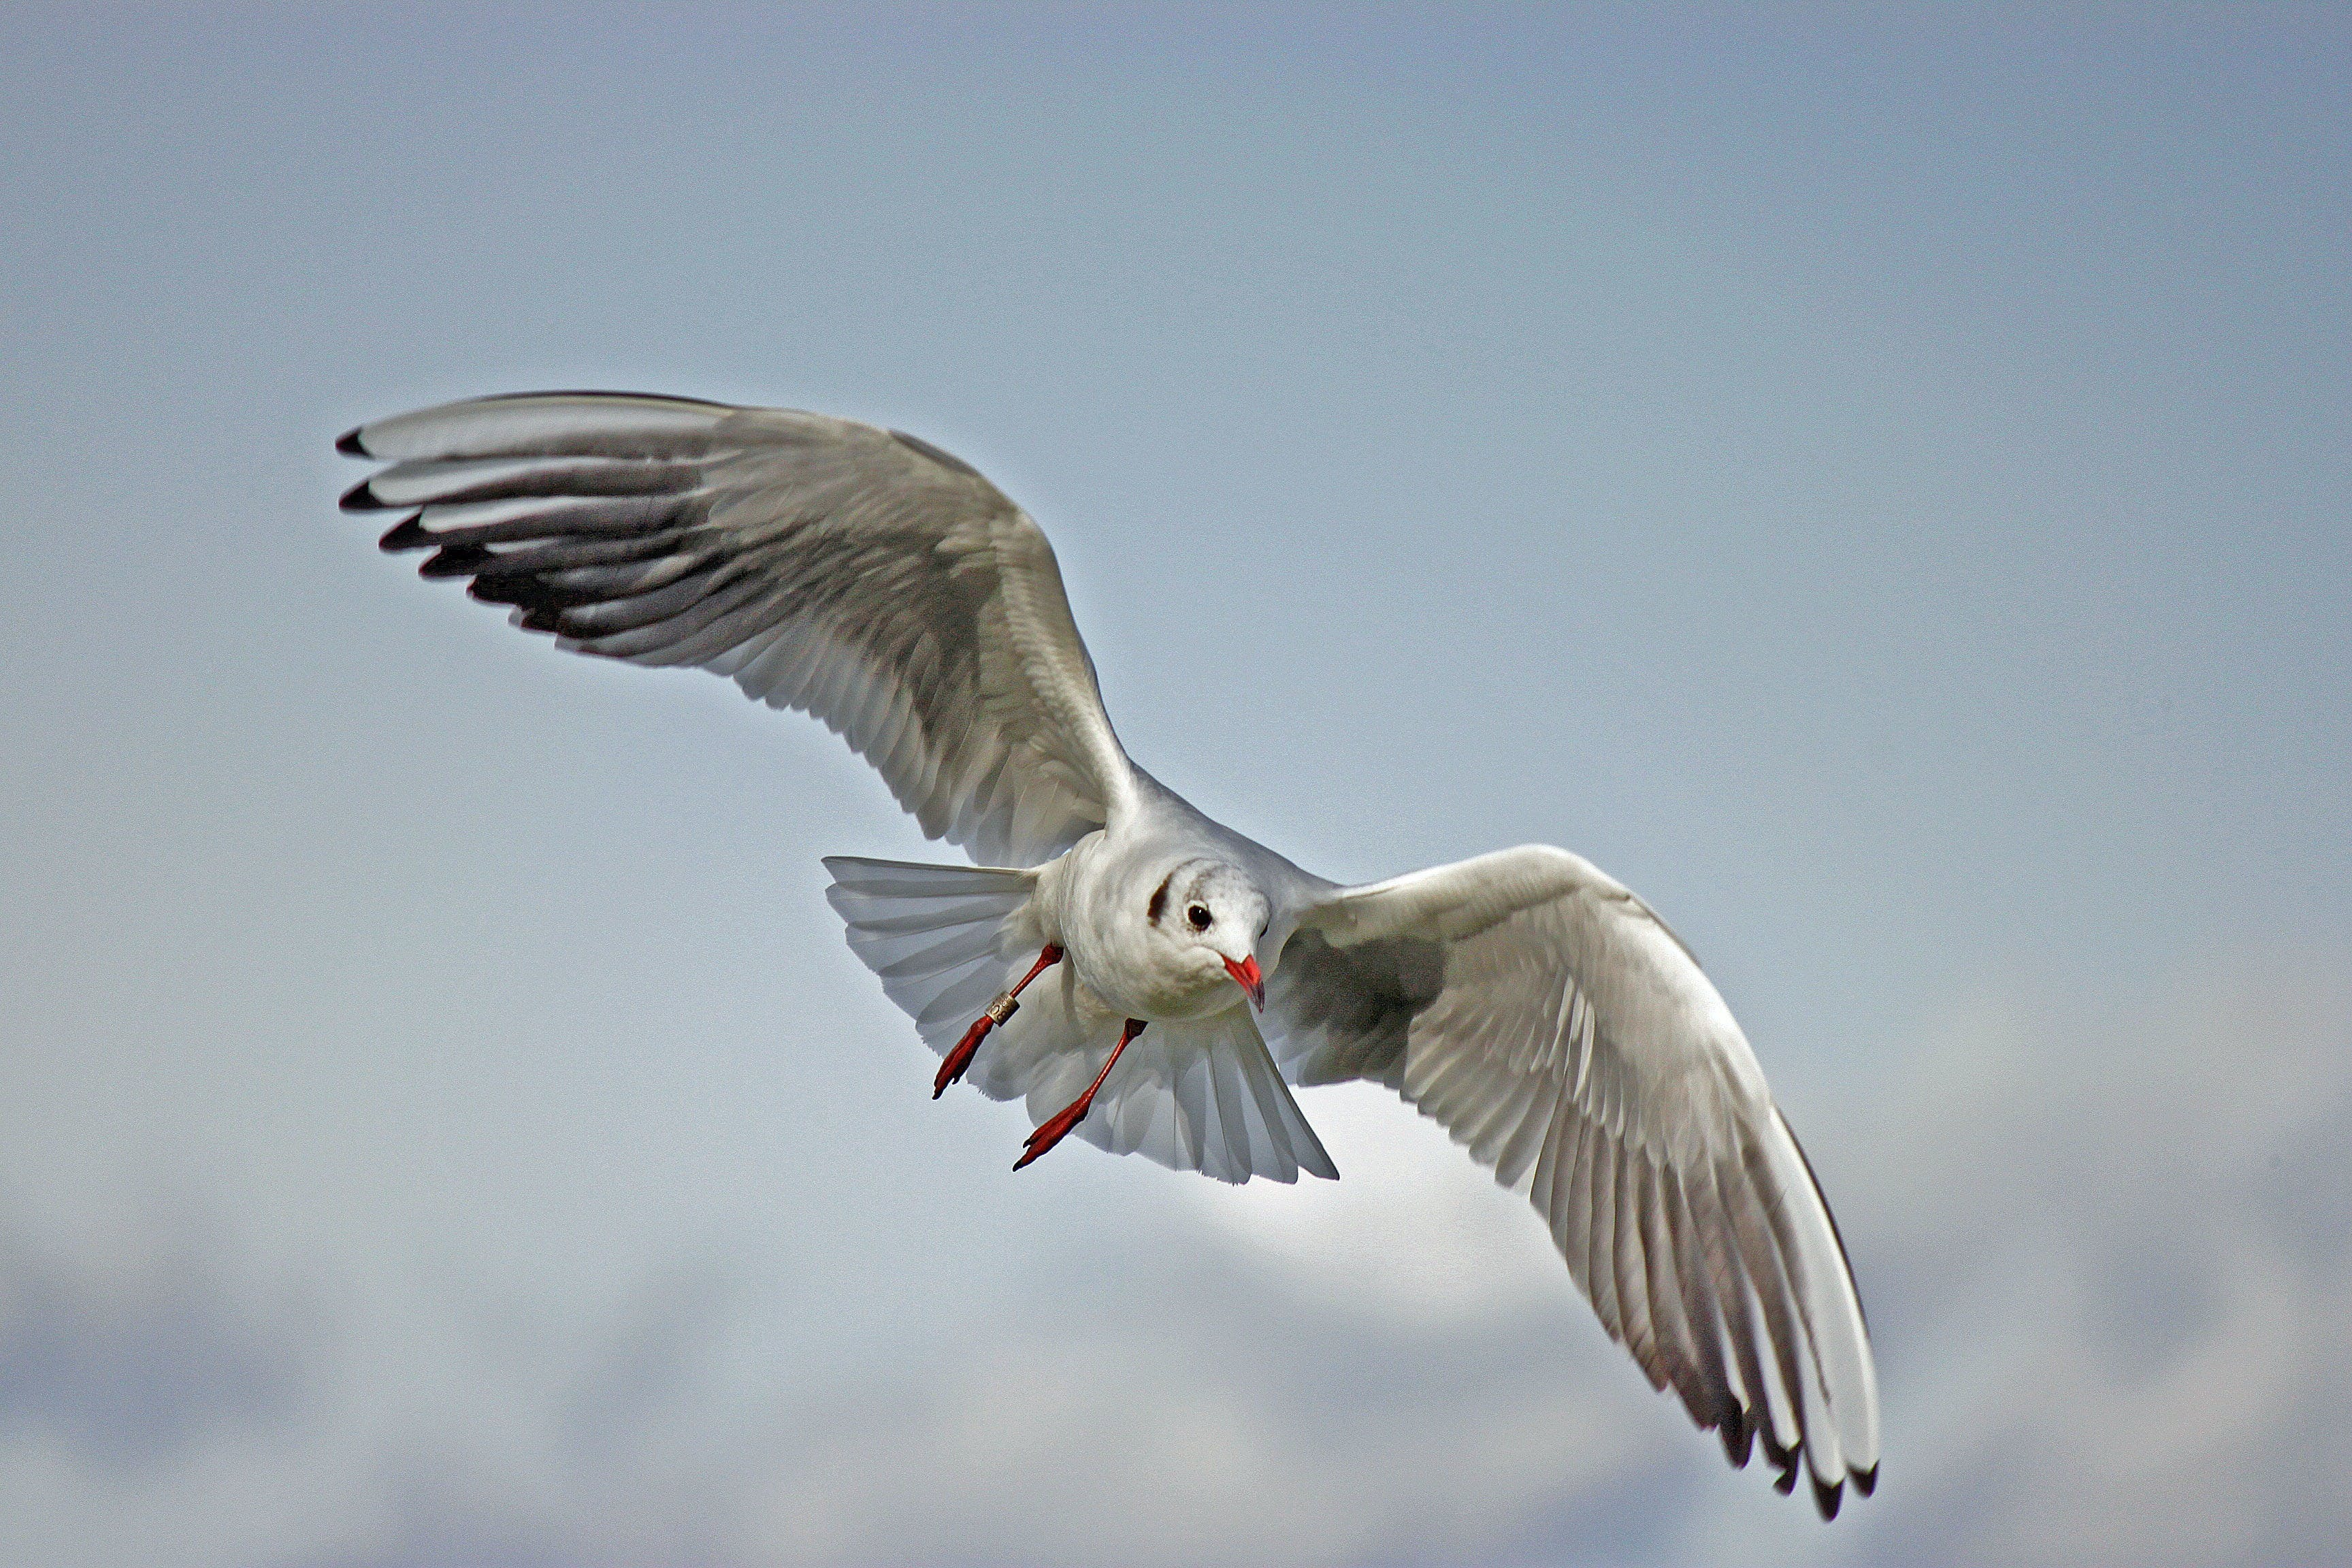 Free stock photo of bird, flying, animal, seagull